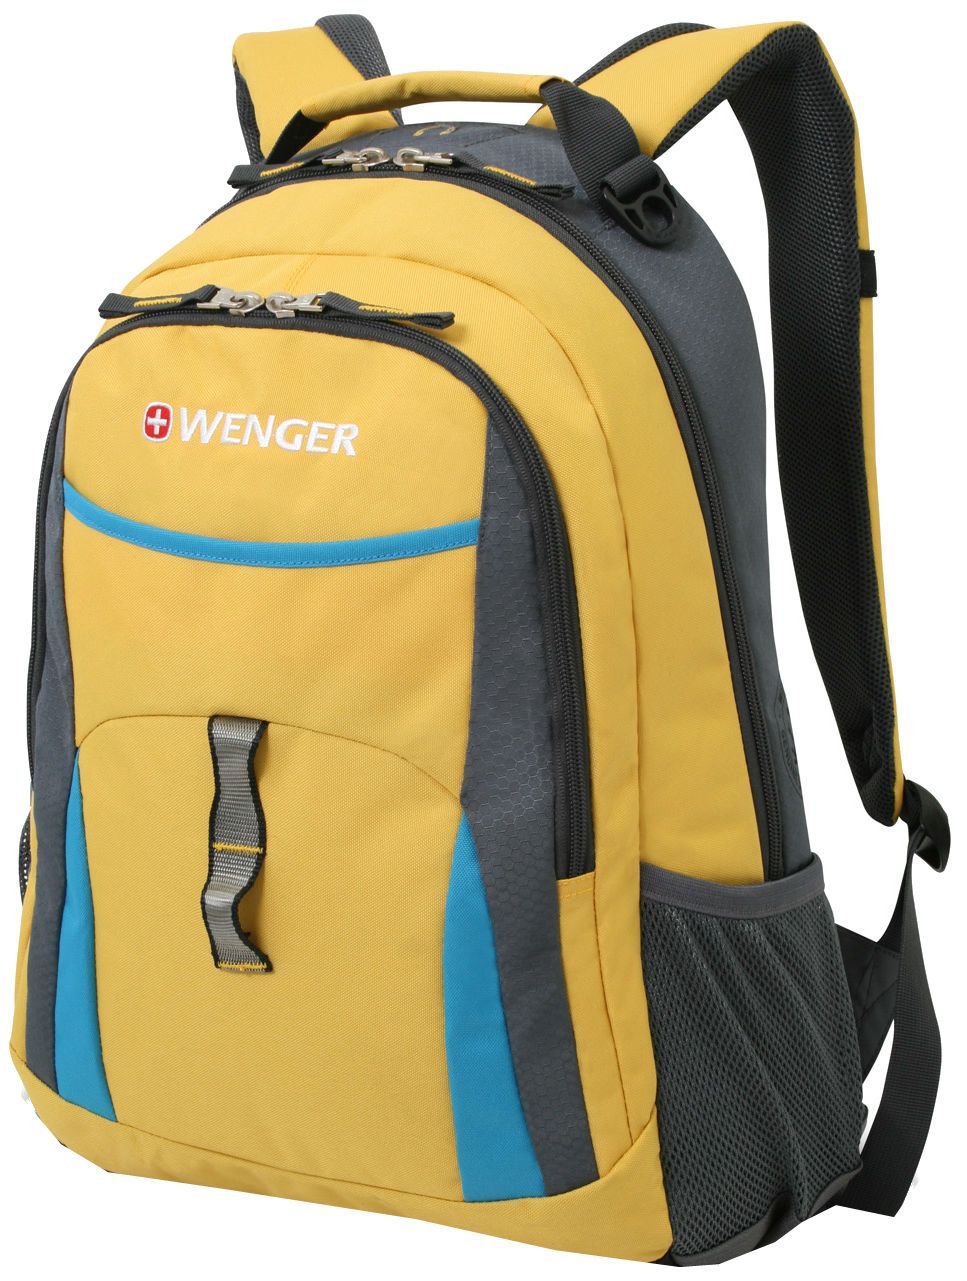 Wenger Backpack 3162244408